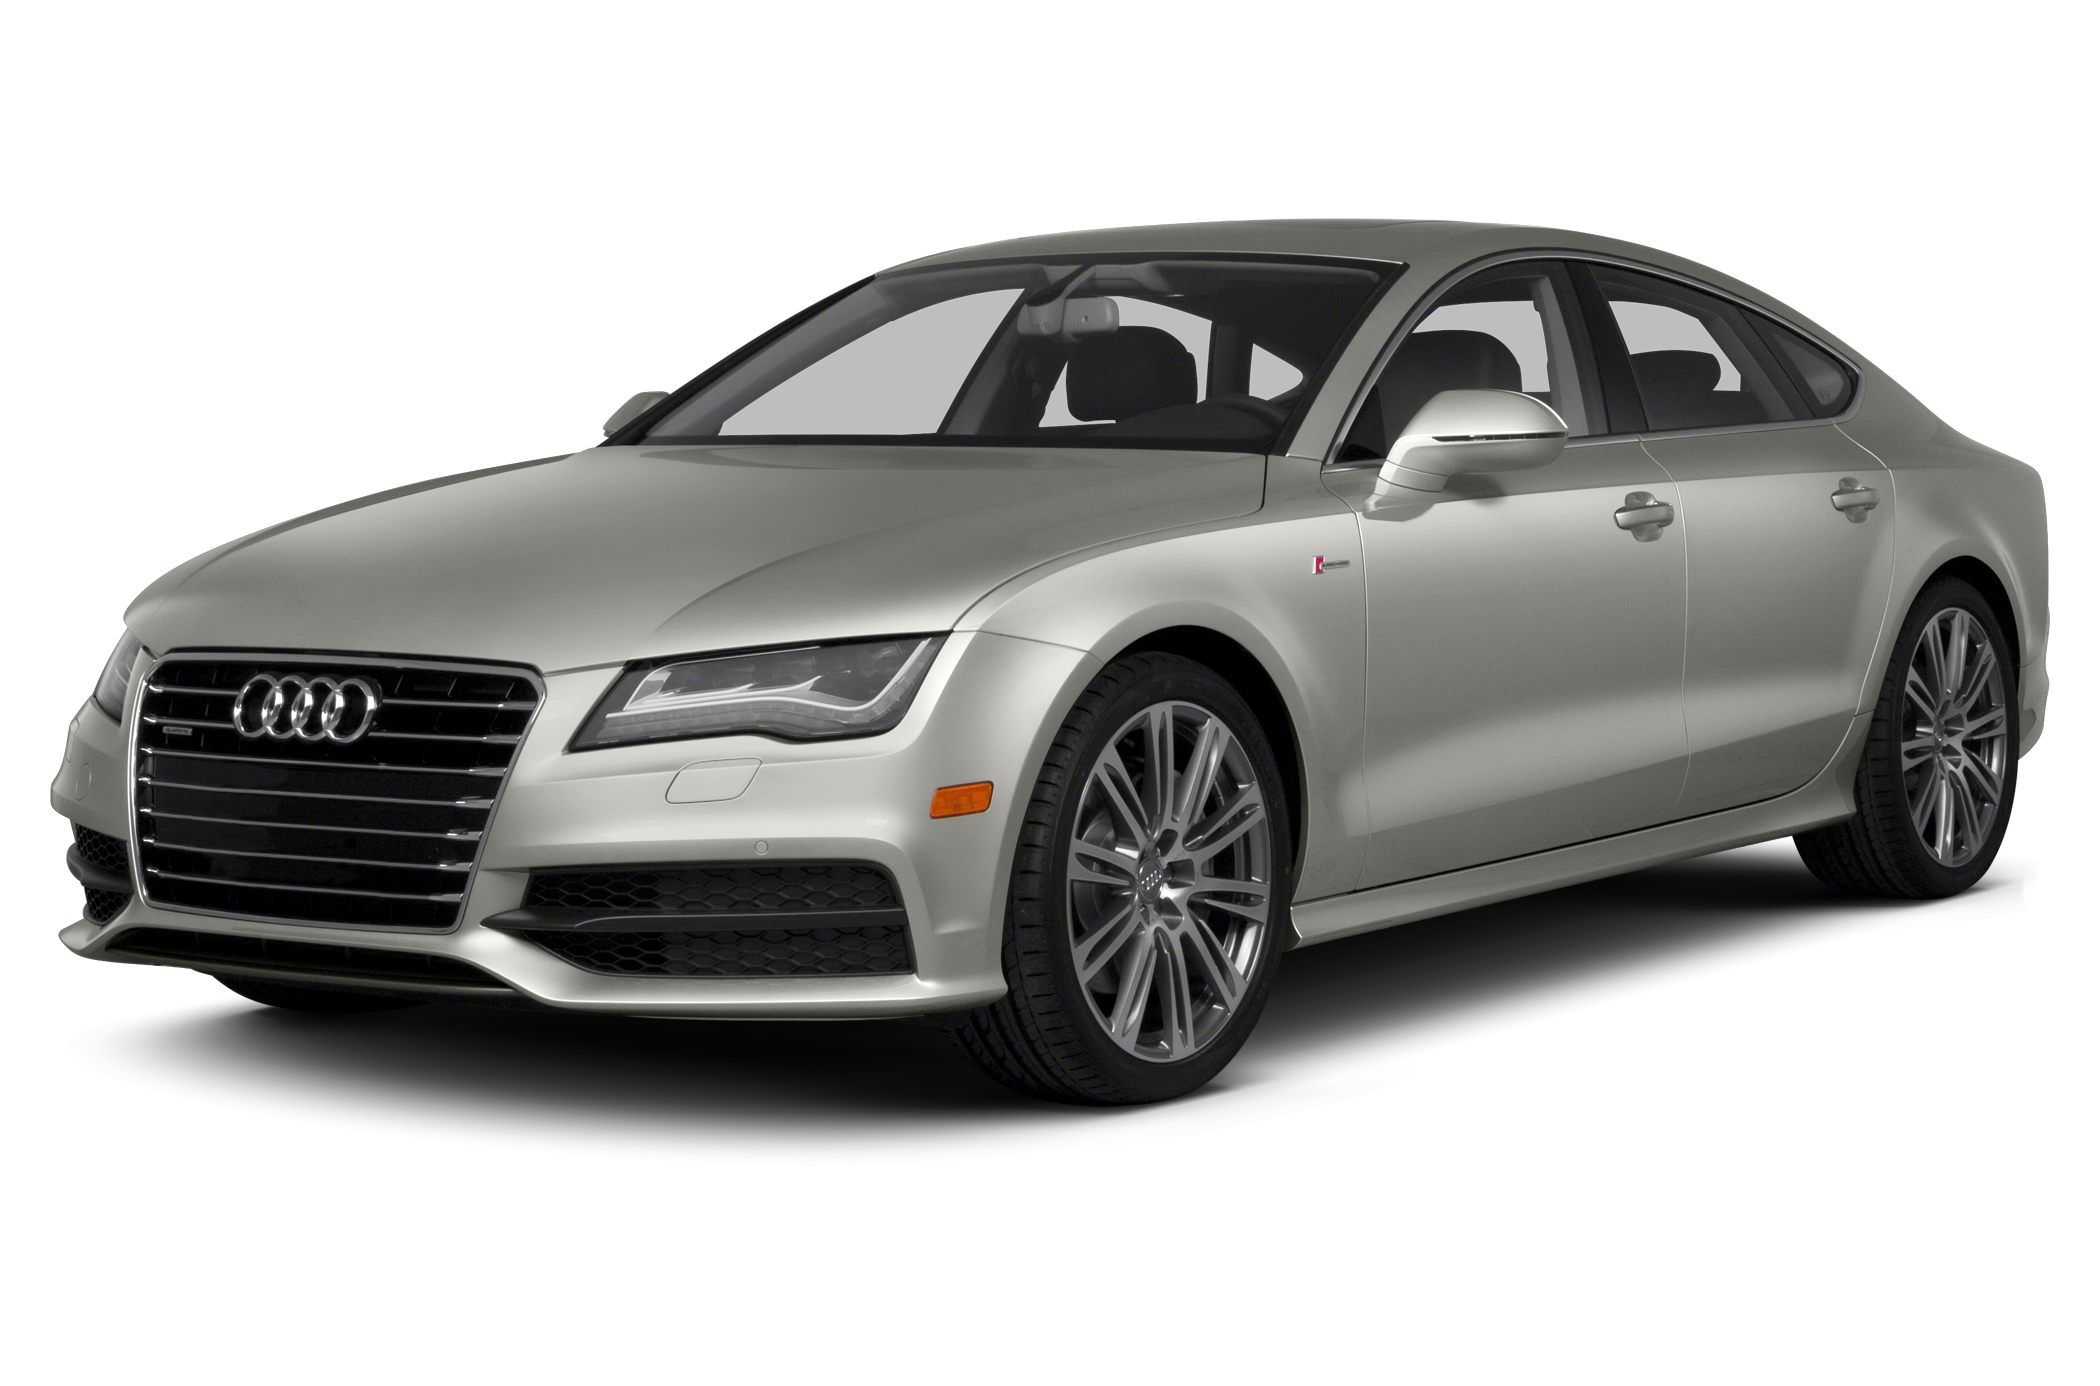 2013 Audi A7 30T quattro Premium WE FINANCECARFAX CERTIFIED HEATED LEATHER MEMORY SEATS O